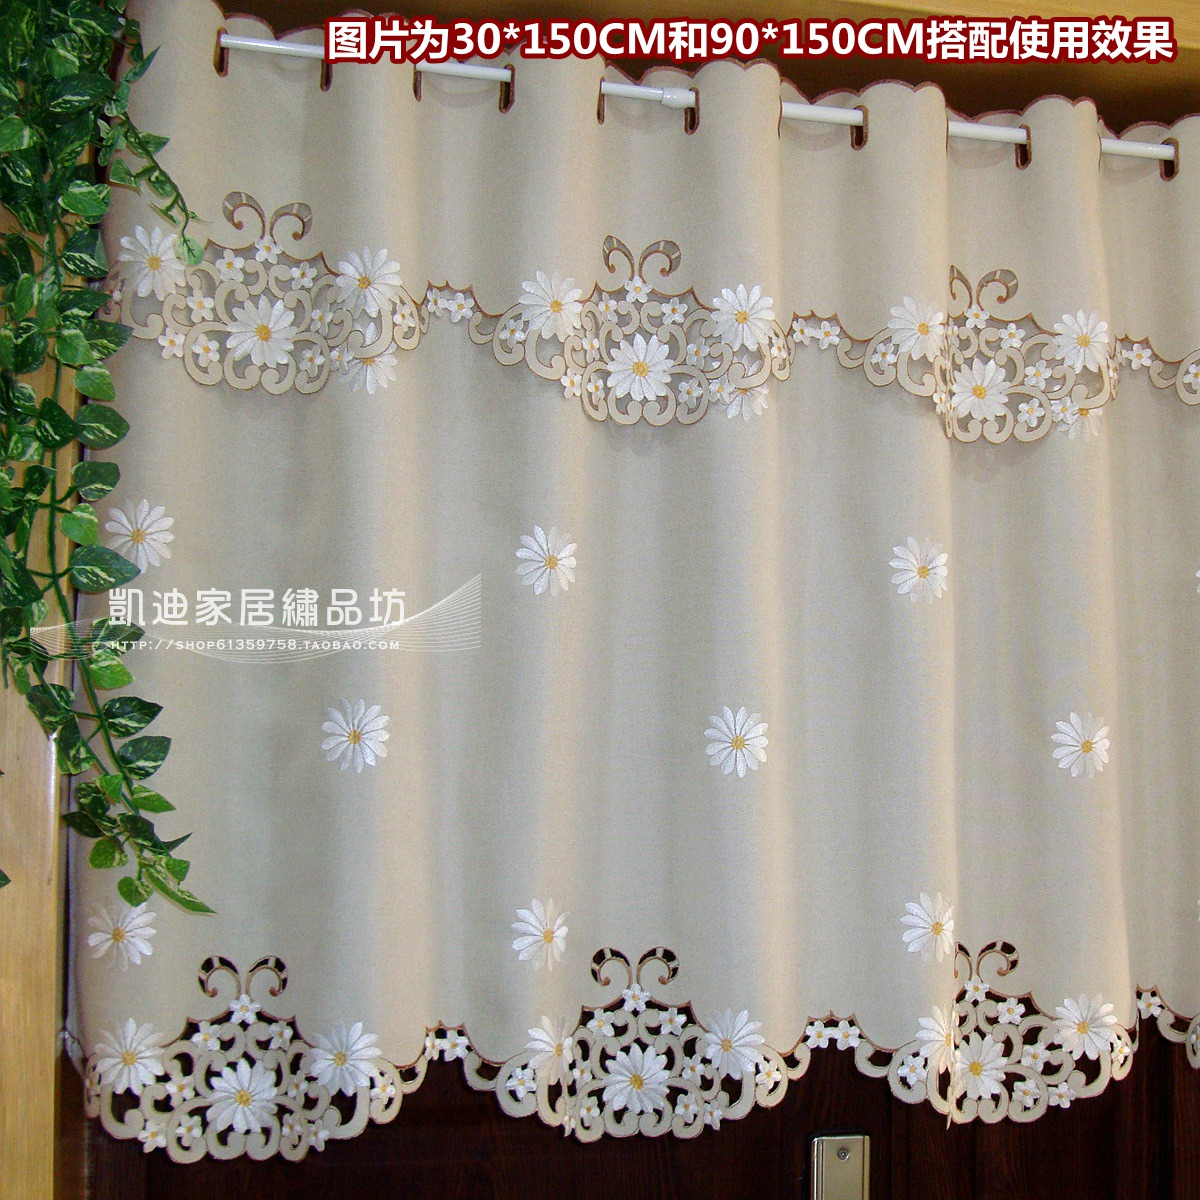 Kitchen Cabinets With Curtains Instead Of Doors: Aliexpress.com : Buy Quality Tube Curtain Embroidery